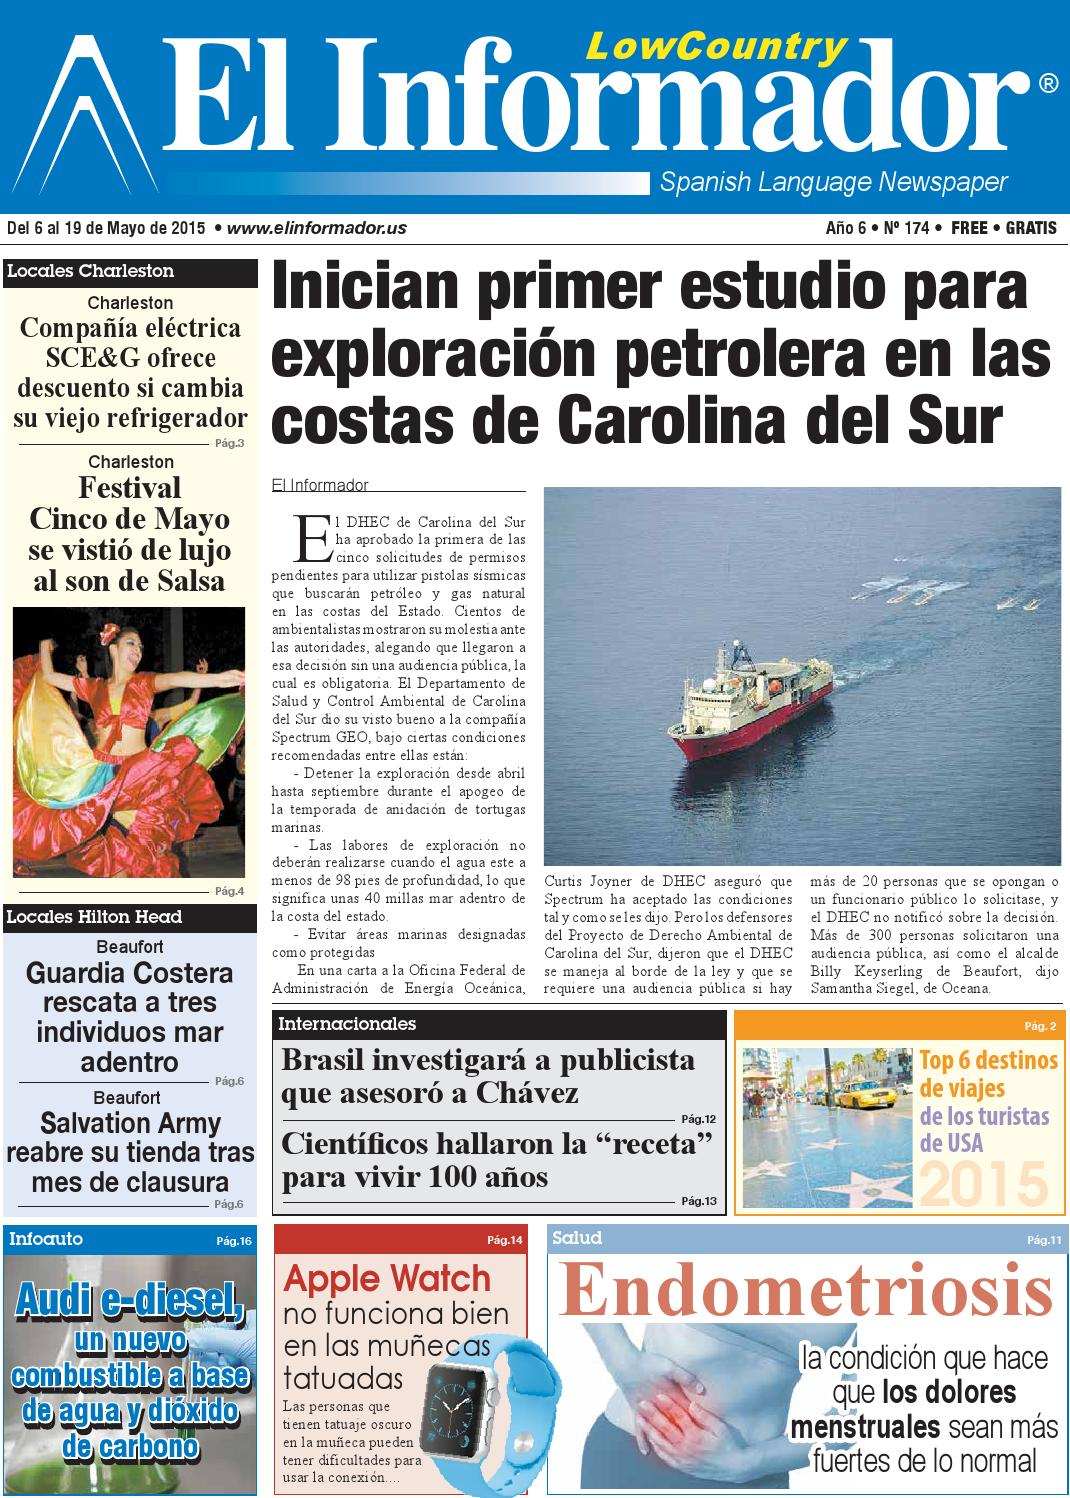 El Informador Newspaper 05/06/15 by El Informador Spanish Language ...